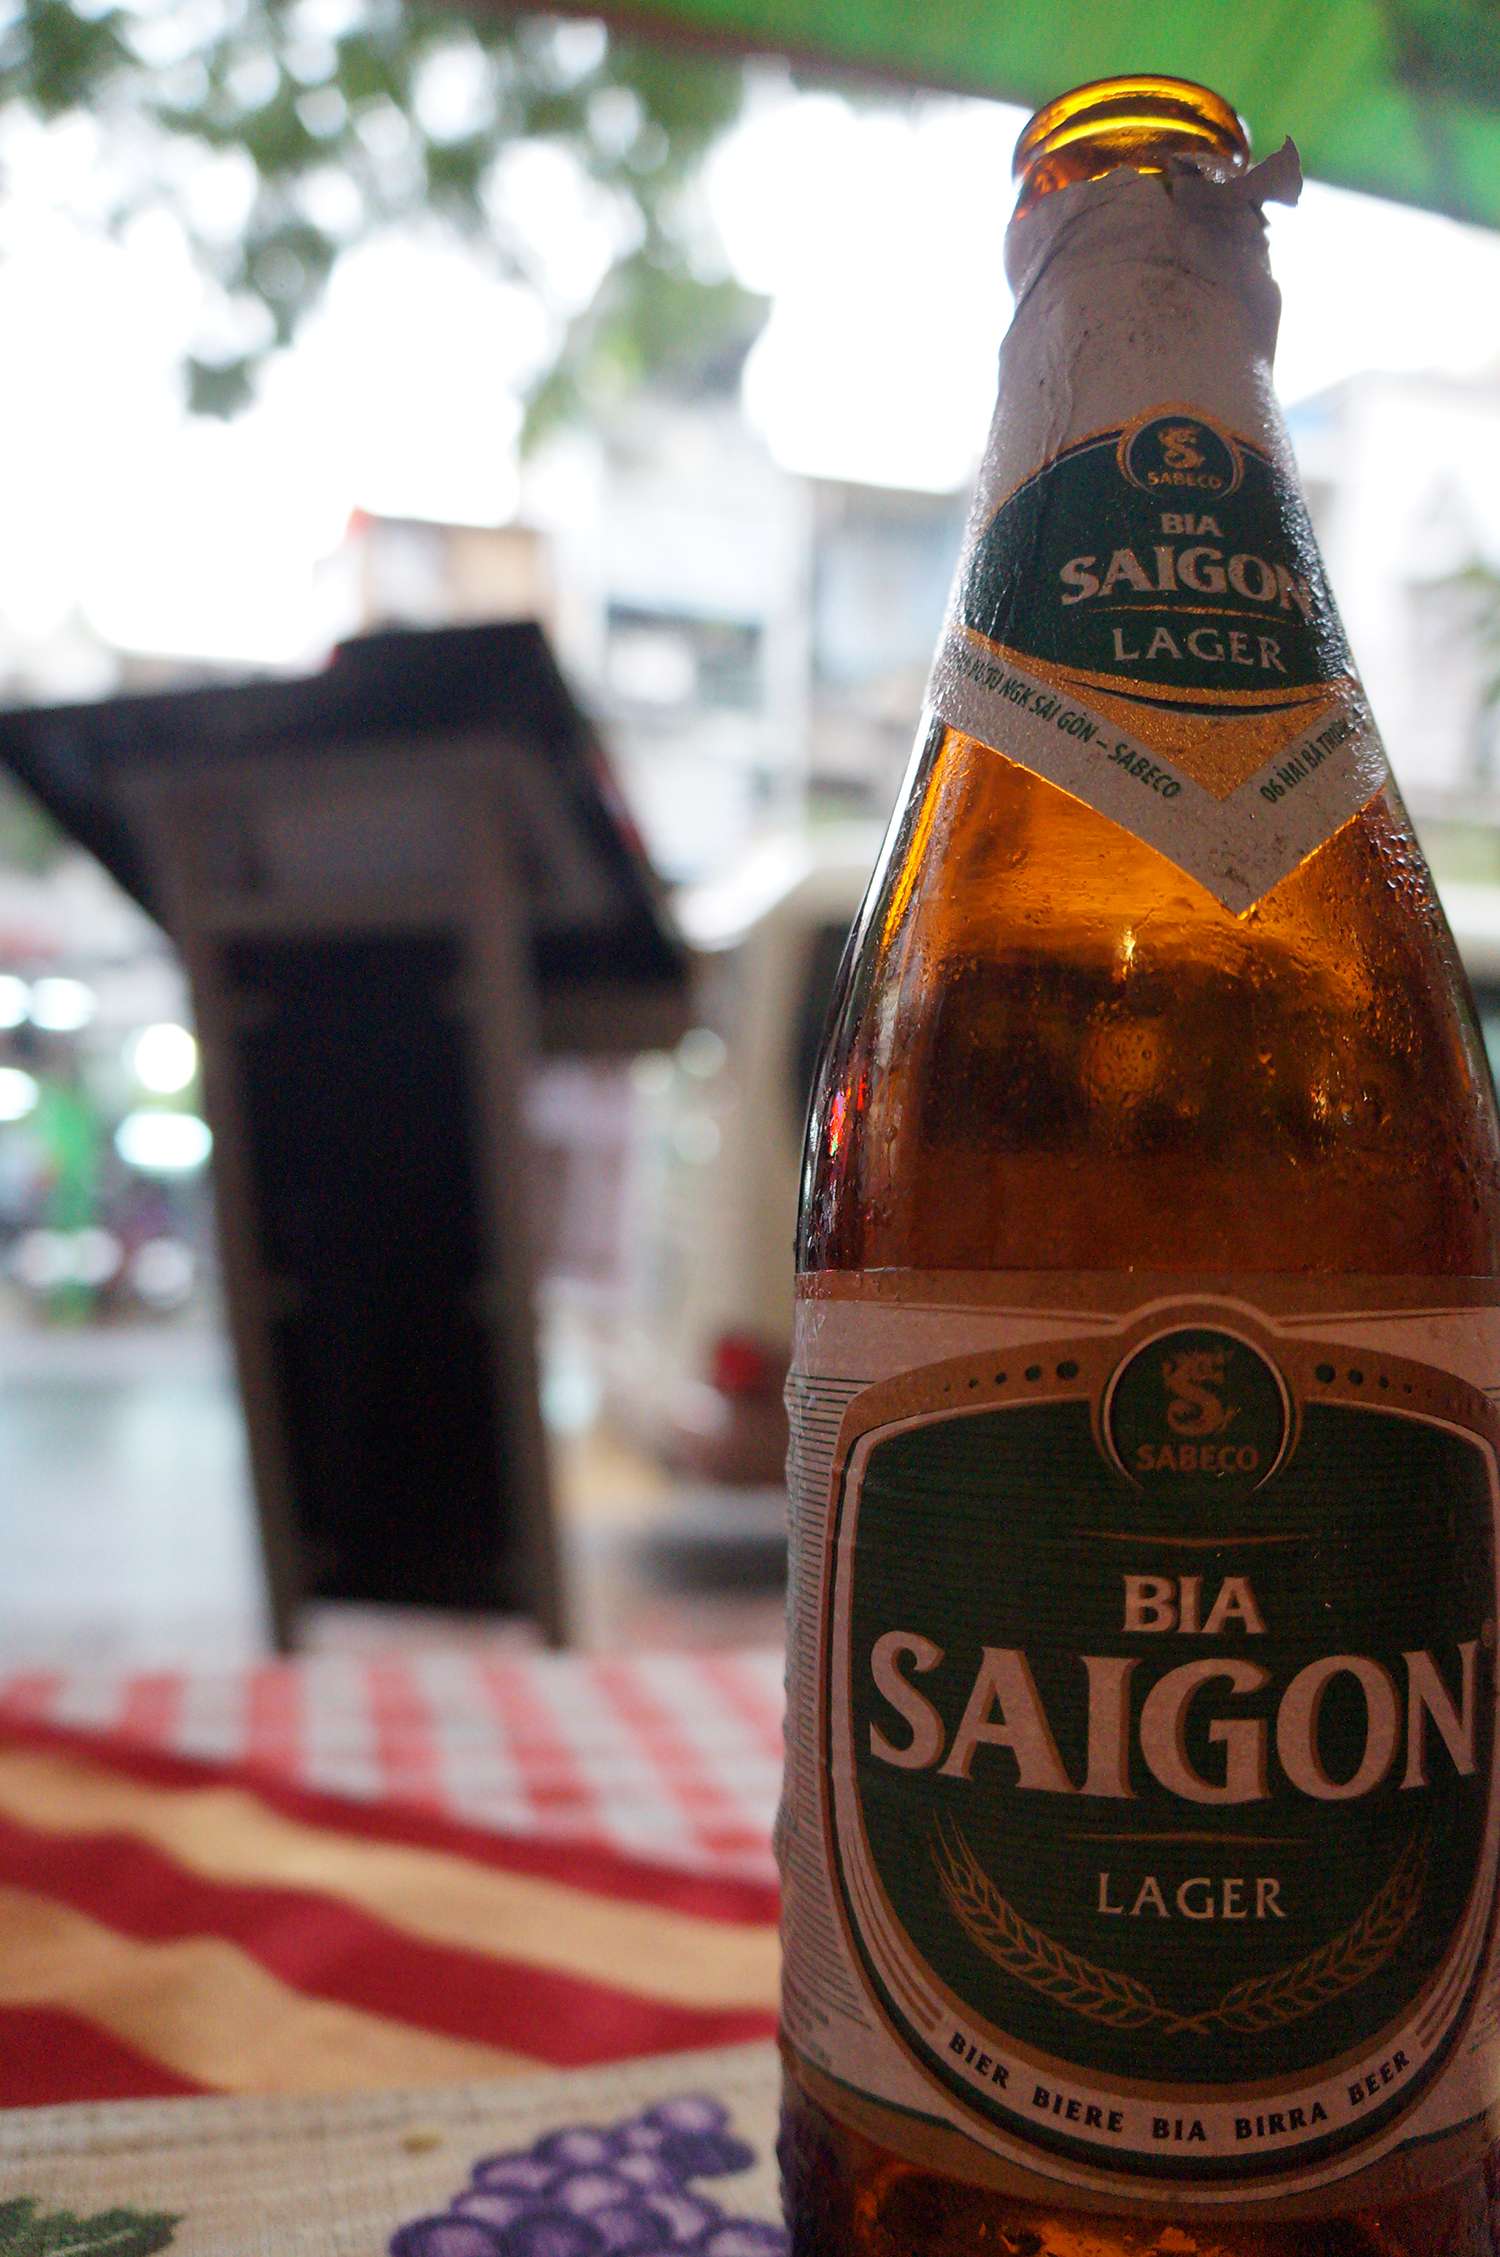 siagon_beer_large_bottle